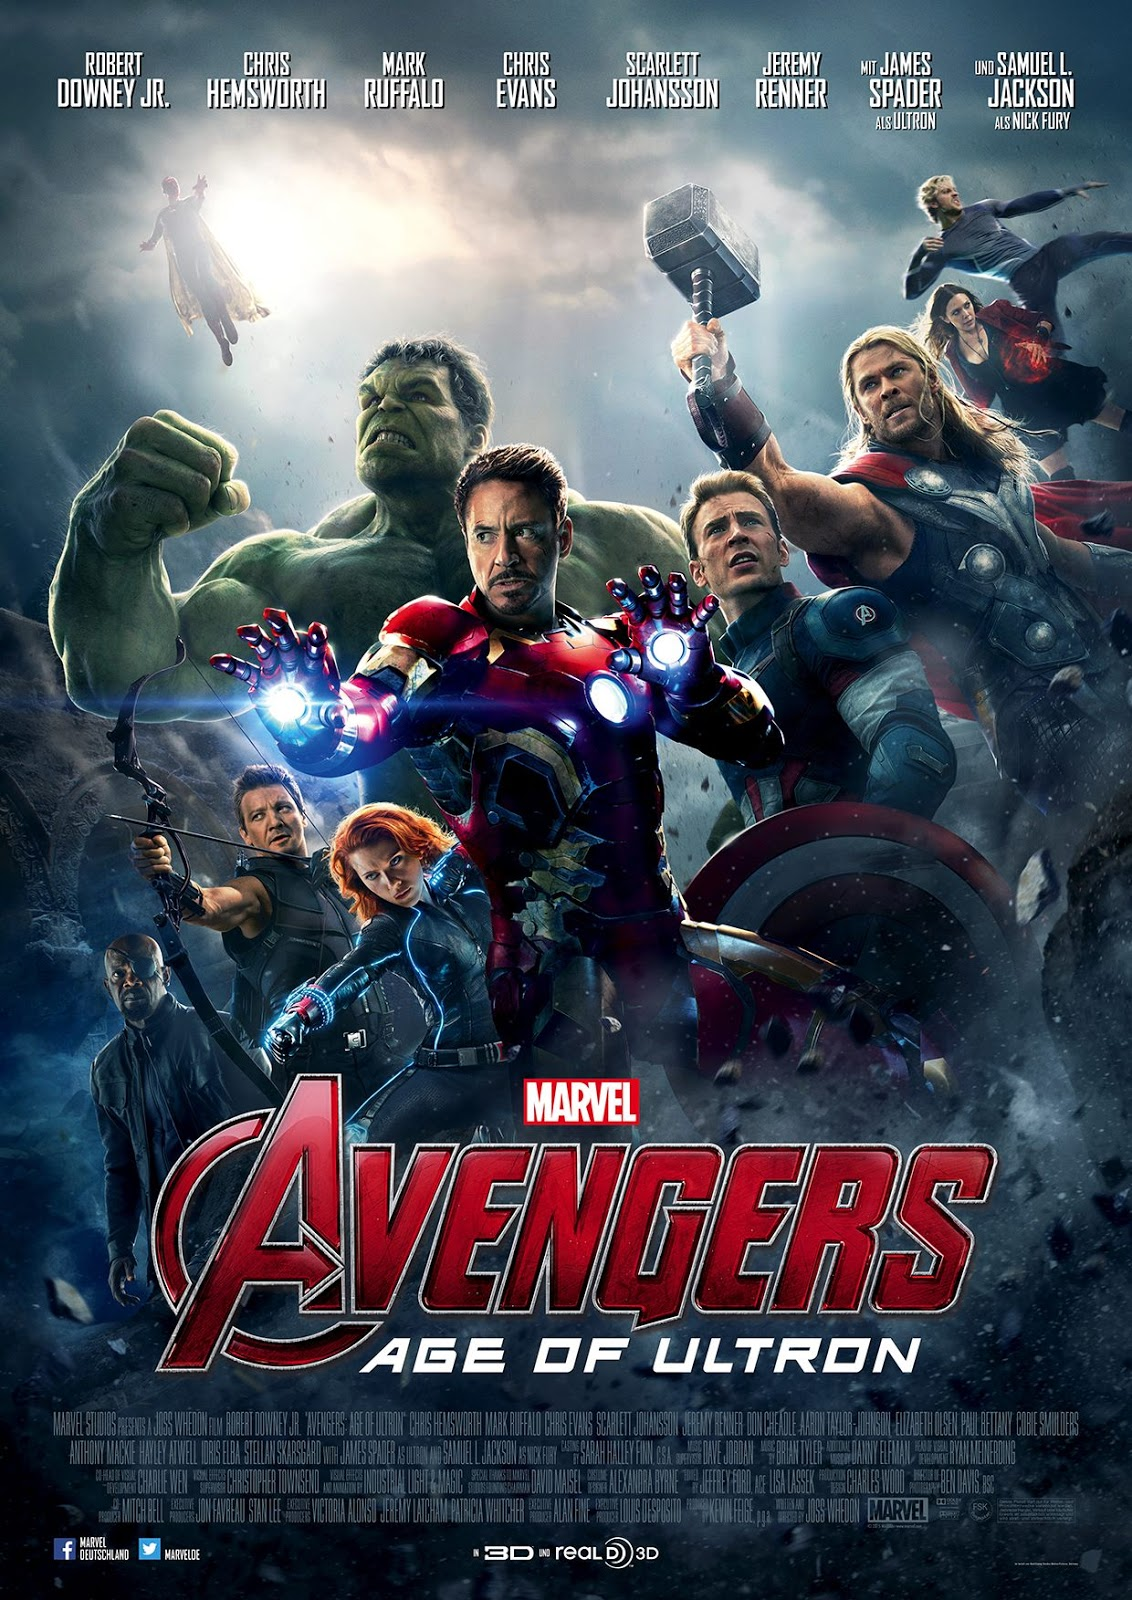 Marvel Avengers Age of Ultron Poster Plakat